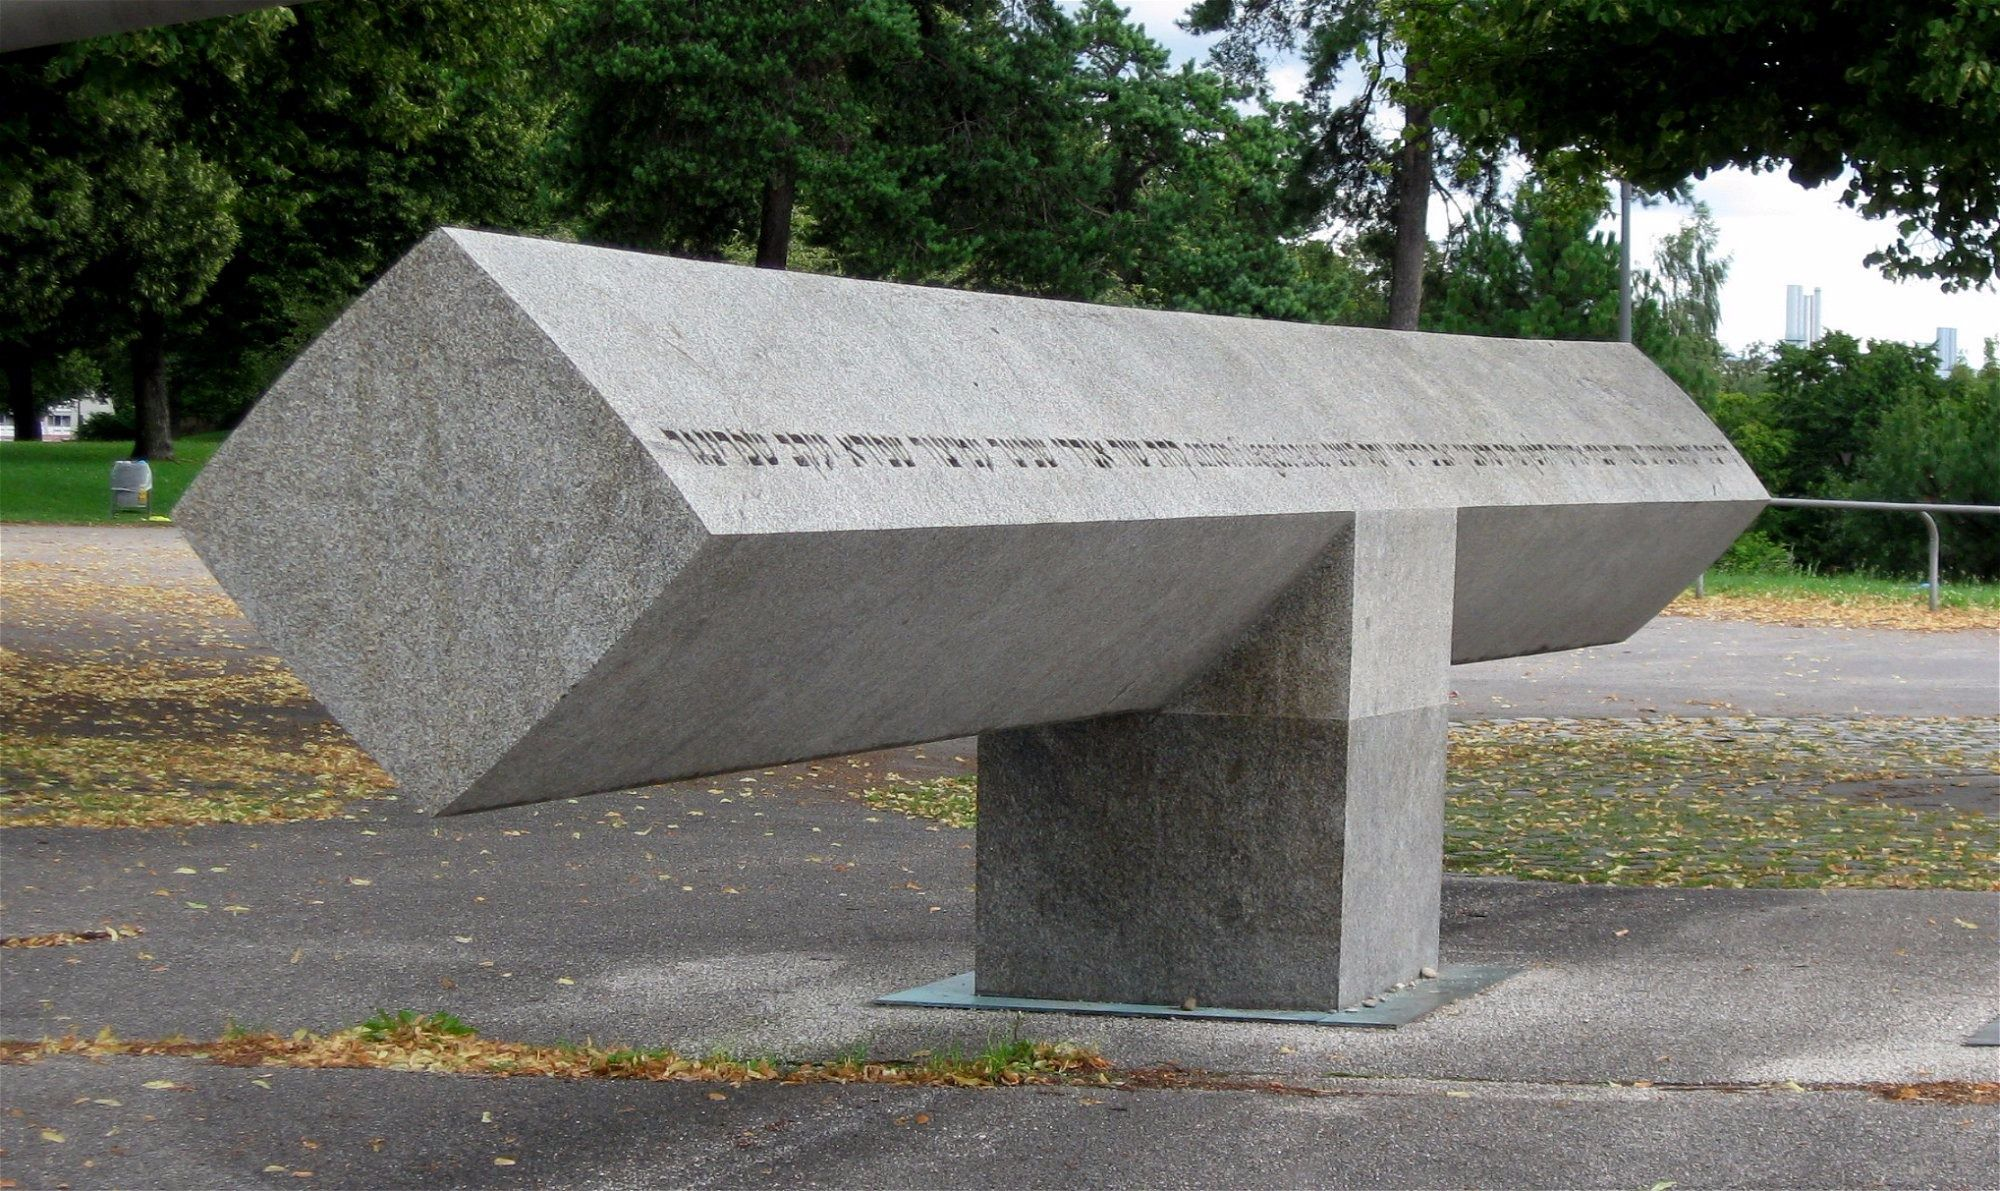 A Memorial for the victims of the terror attacks at the Olympic Games in Munich in 1972.